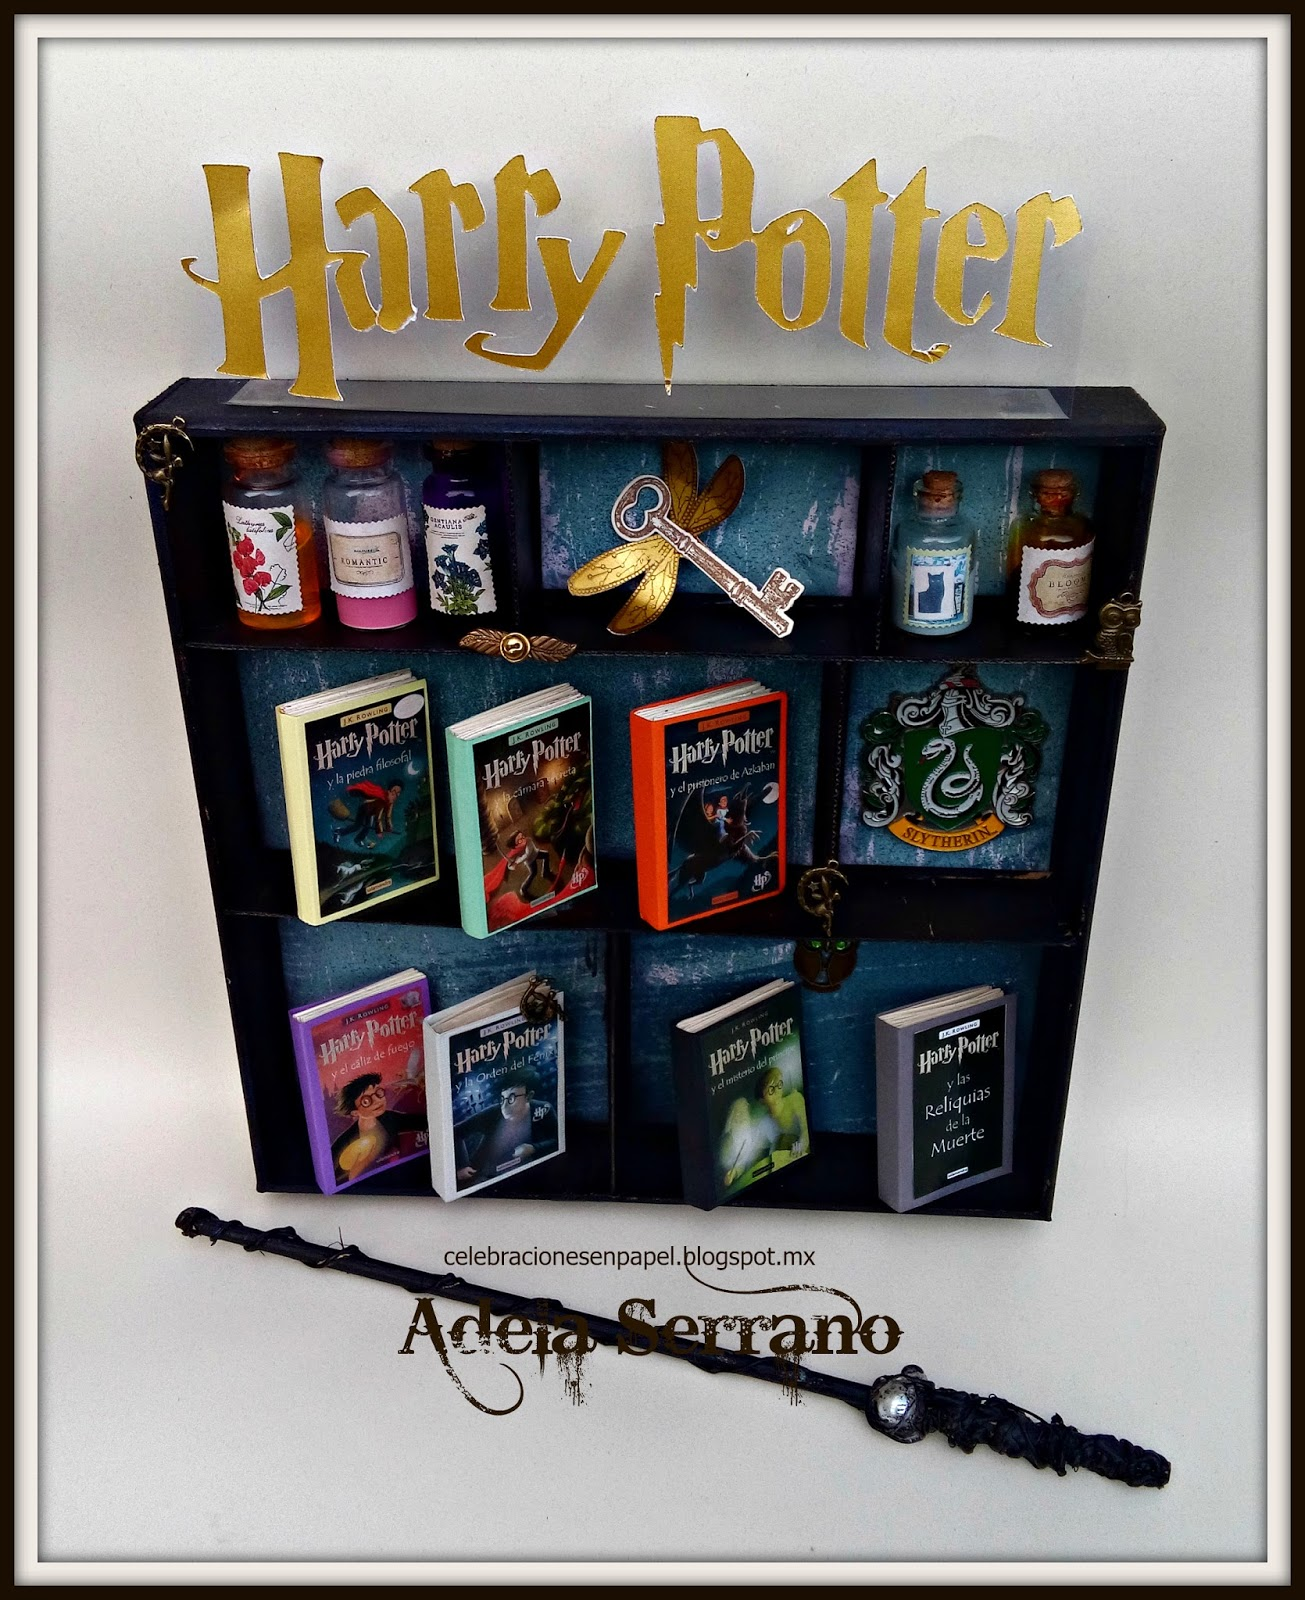 Paginas De Los Libros De Harry Potter Alterando Celebraciones En Papel Blog Hop Harry Potter